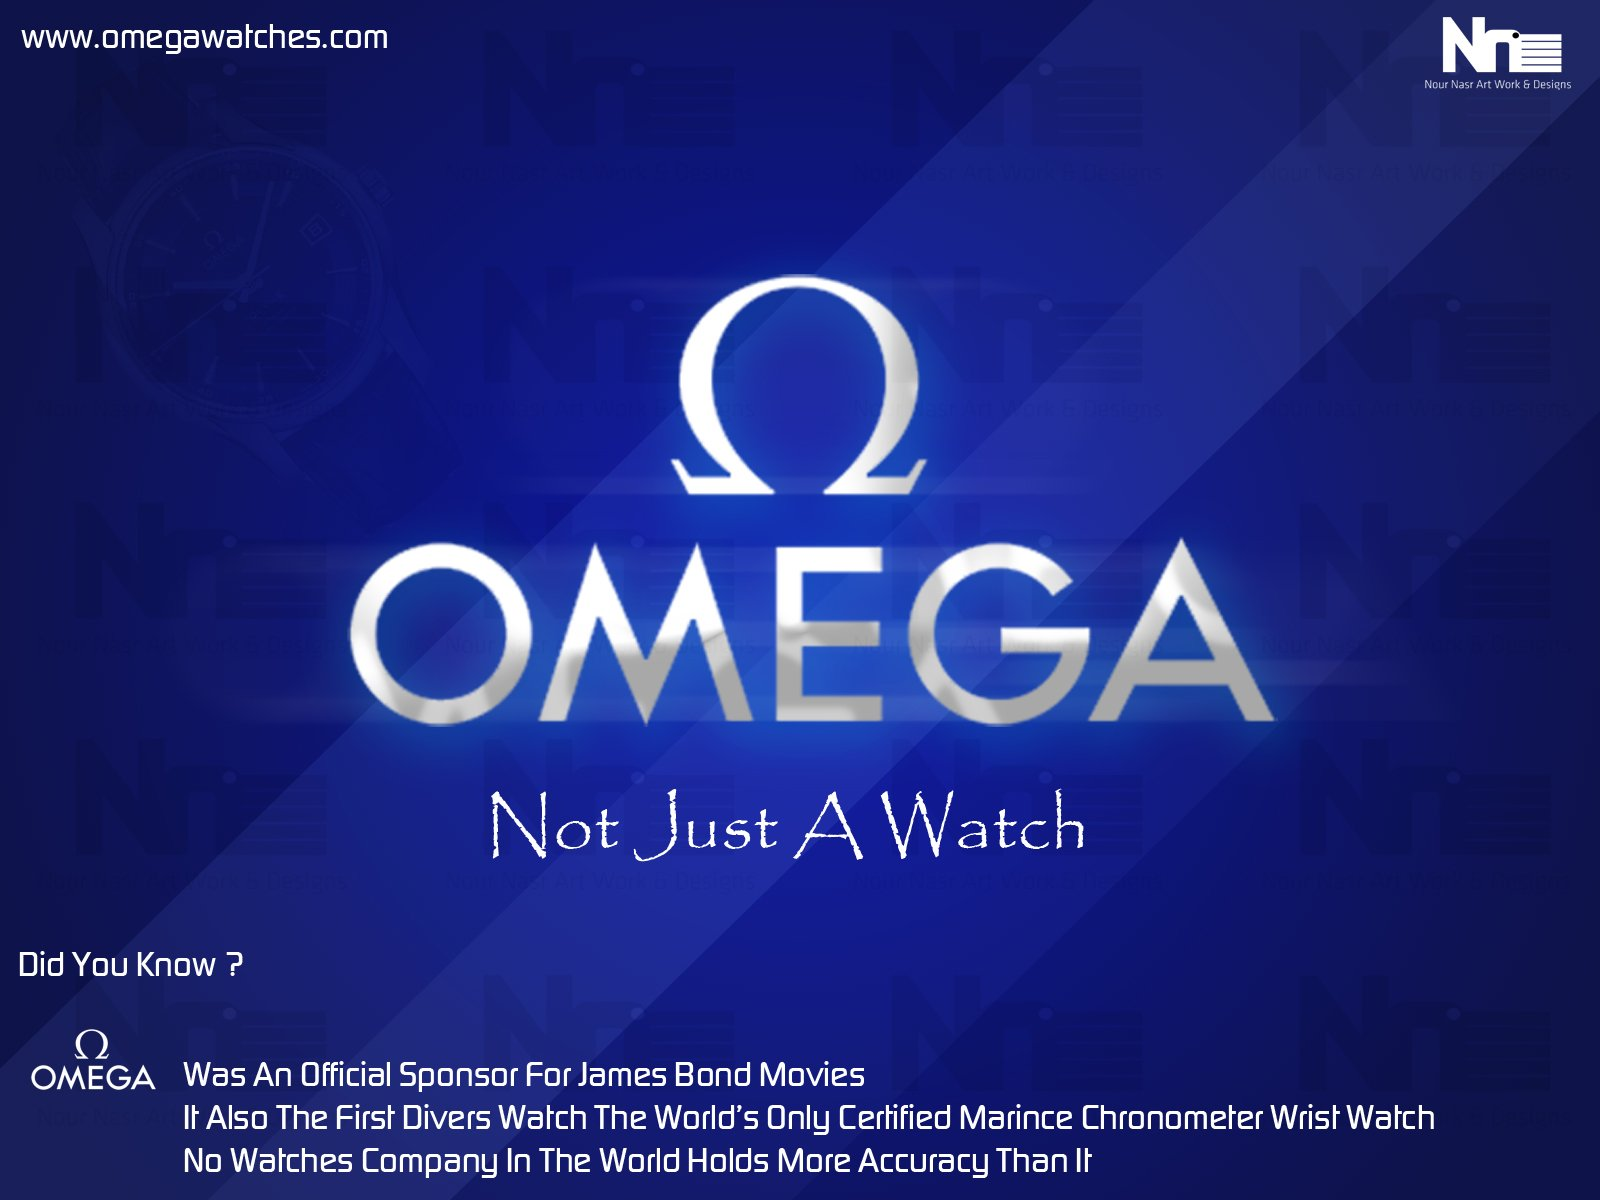 Omega Watches Wallpaper Advertise by NourNasr 1600x1200